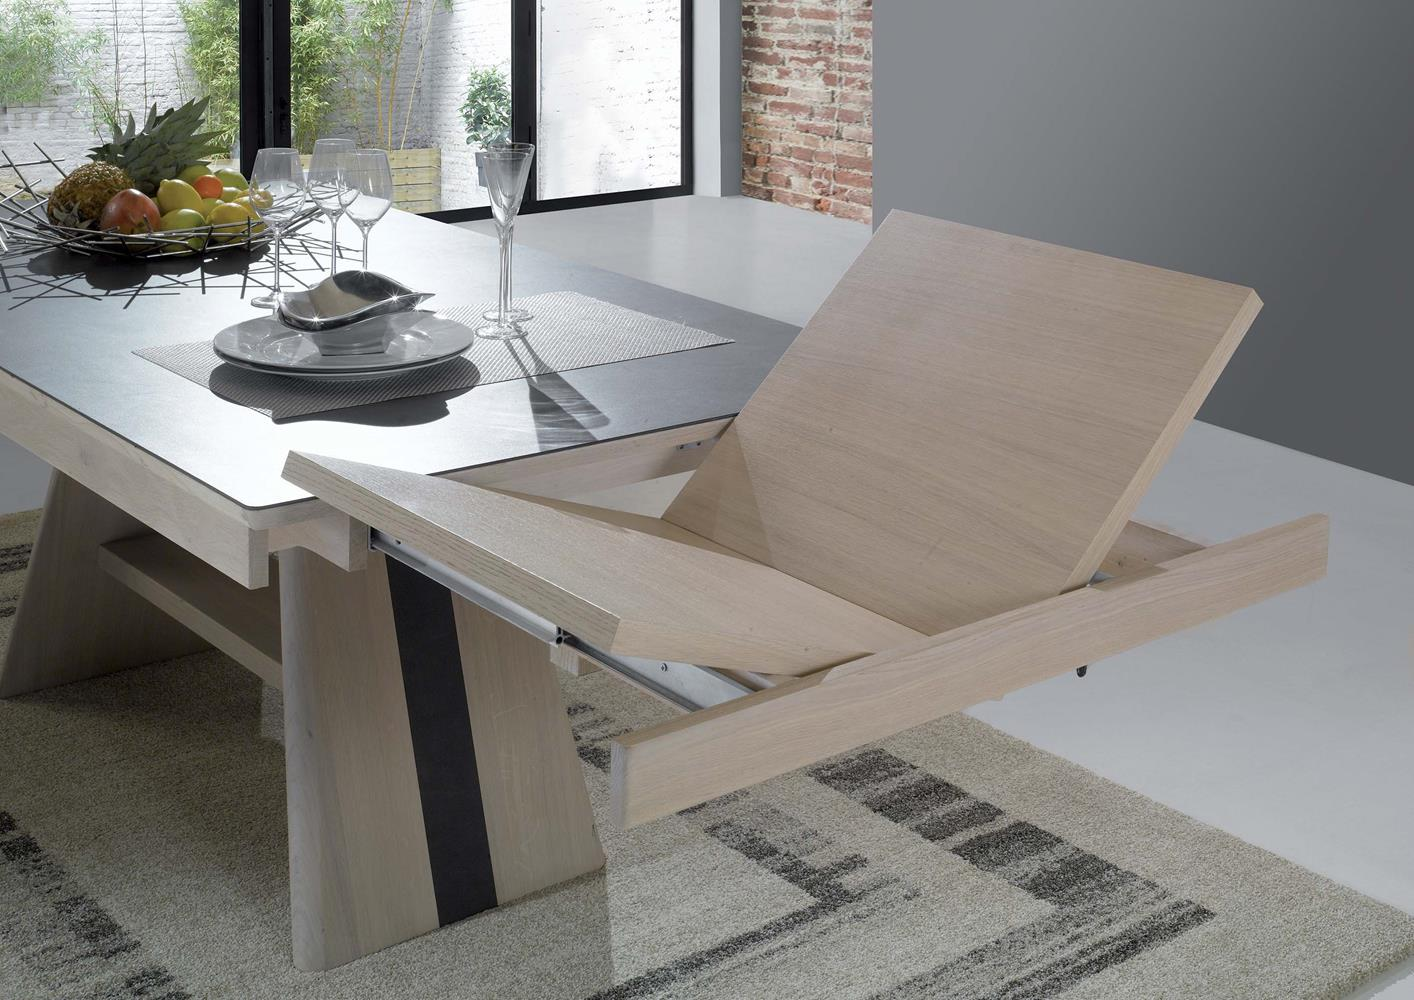 Salle manger table pied central - Table design extensible pied central ...